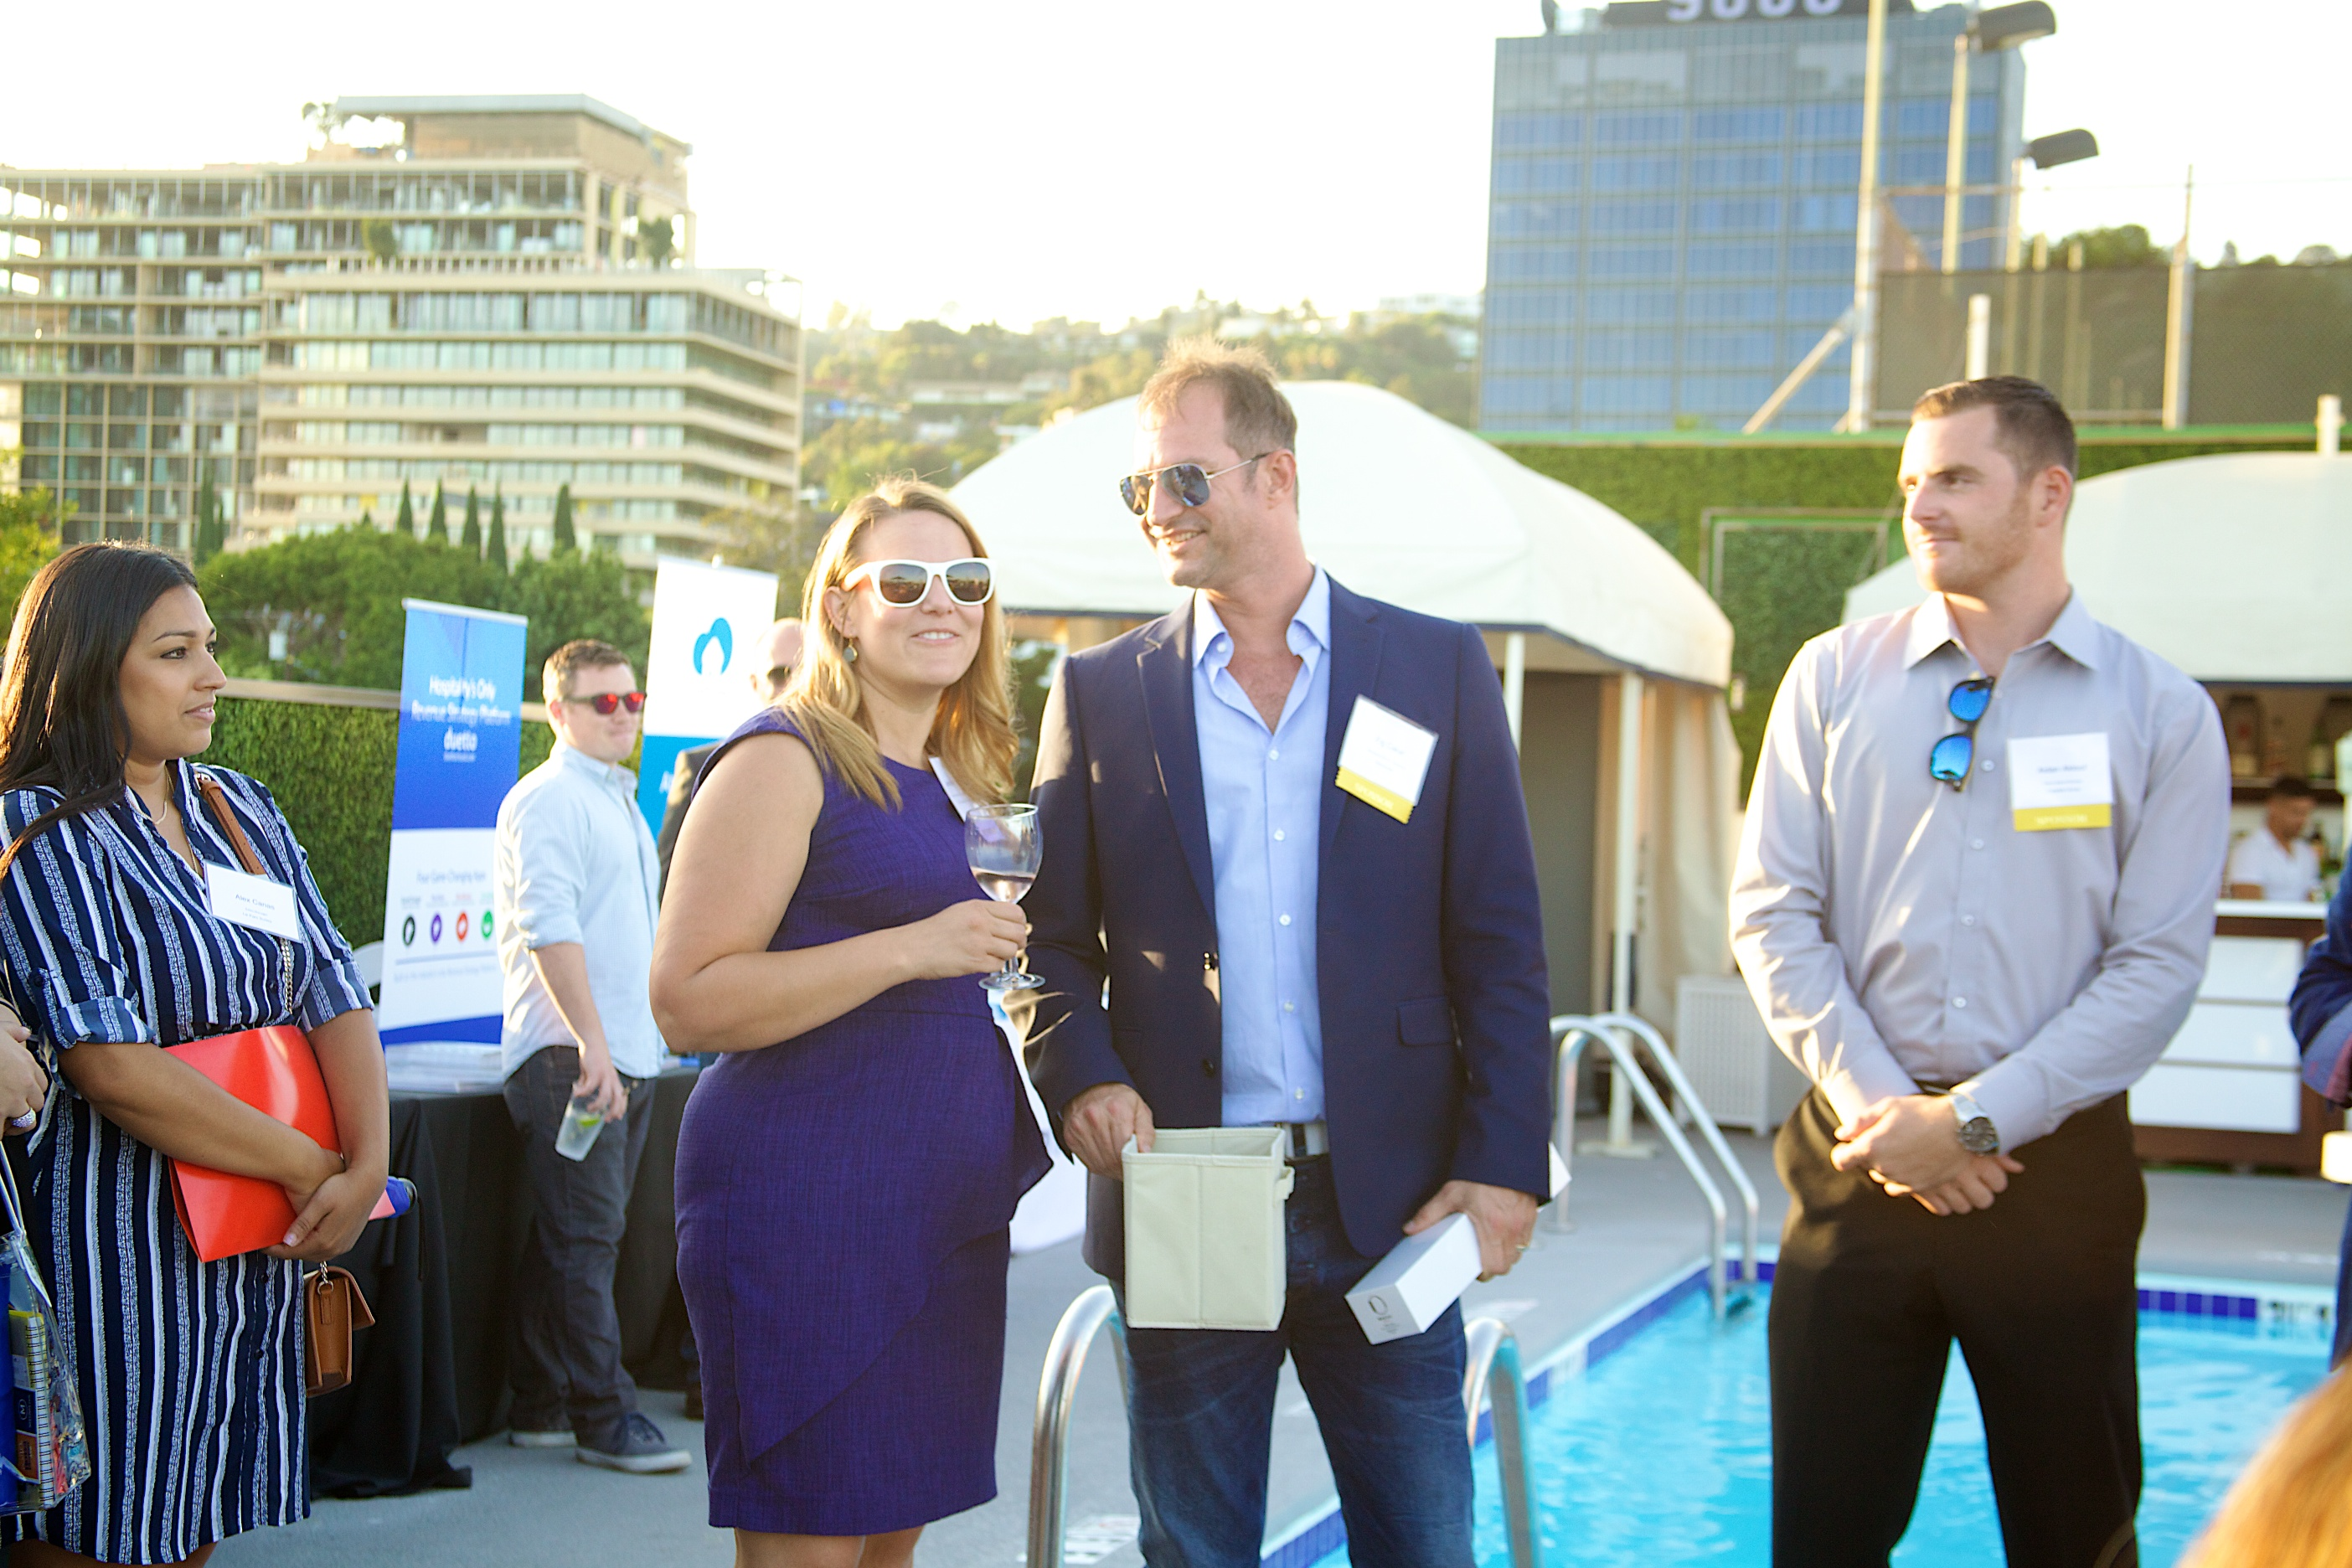 2017 Travel Industry Trade Show and Wine Reception at Montrose West Hollywood